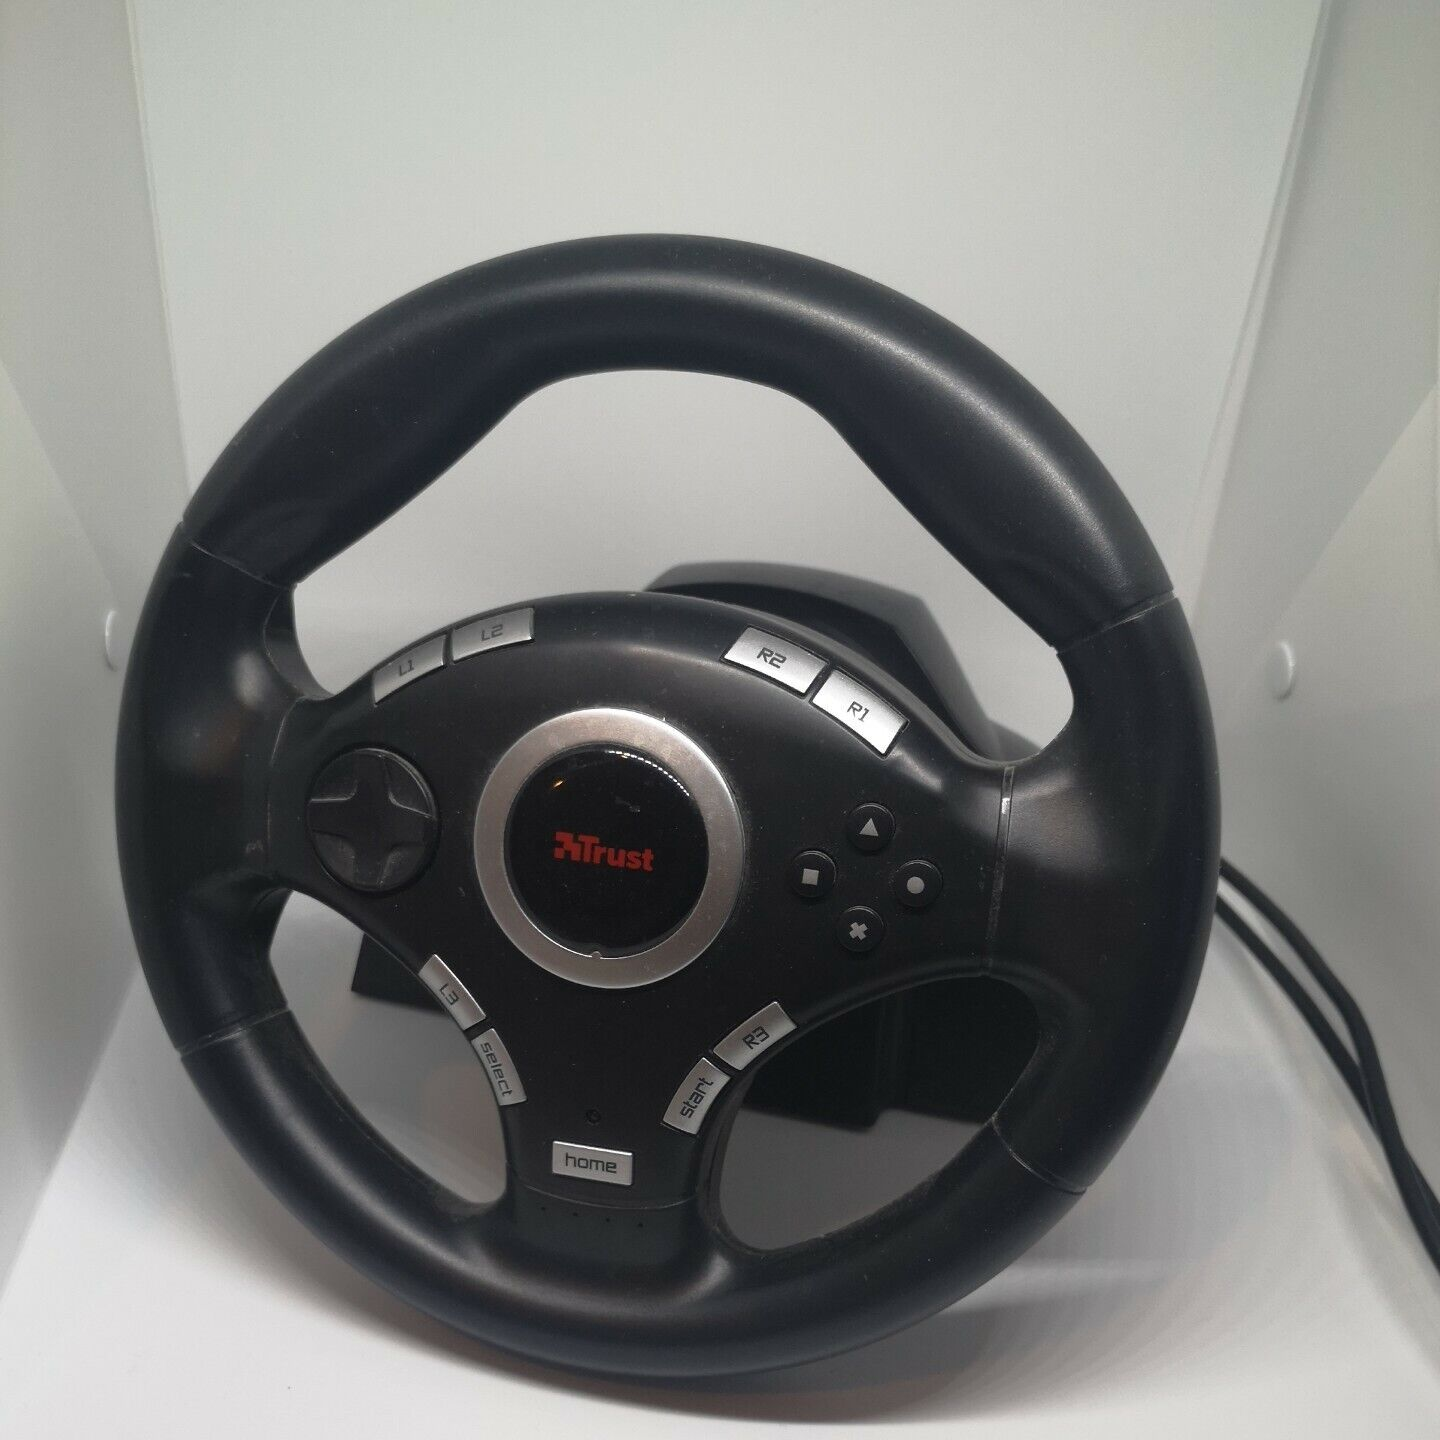 Trust Vibration GXT 27 Vibration Feedback Racing Wheel PRE OWNED ✅ Fast Dispatch